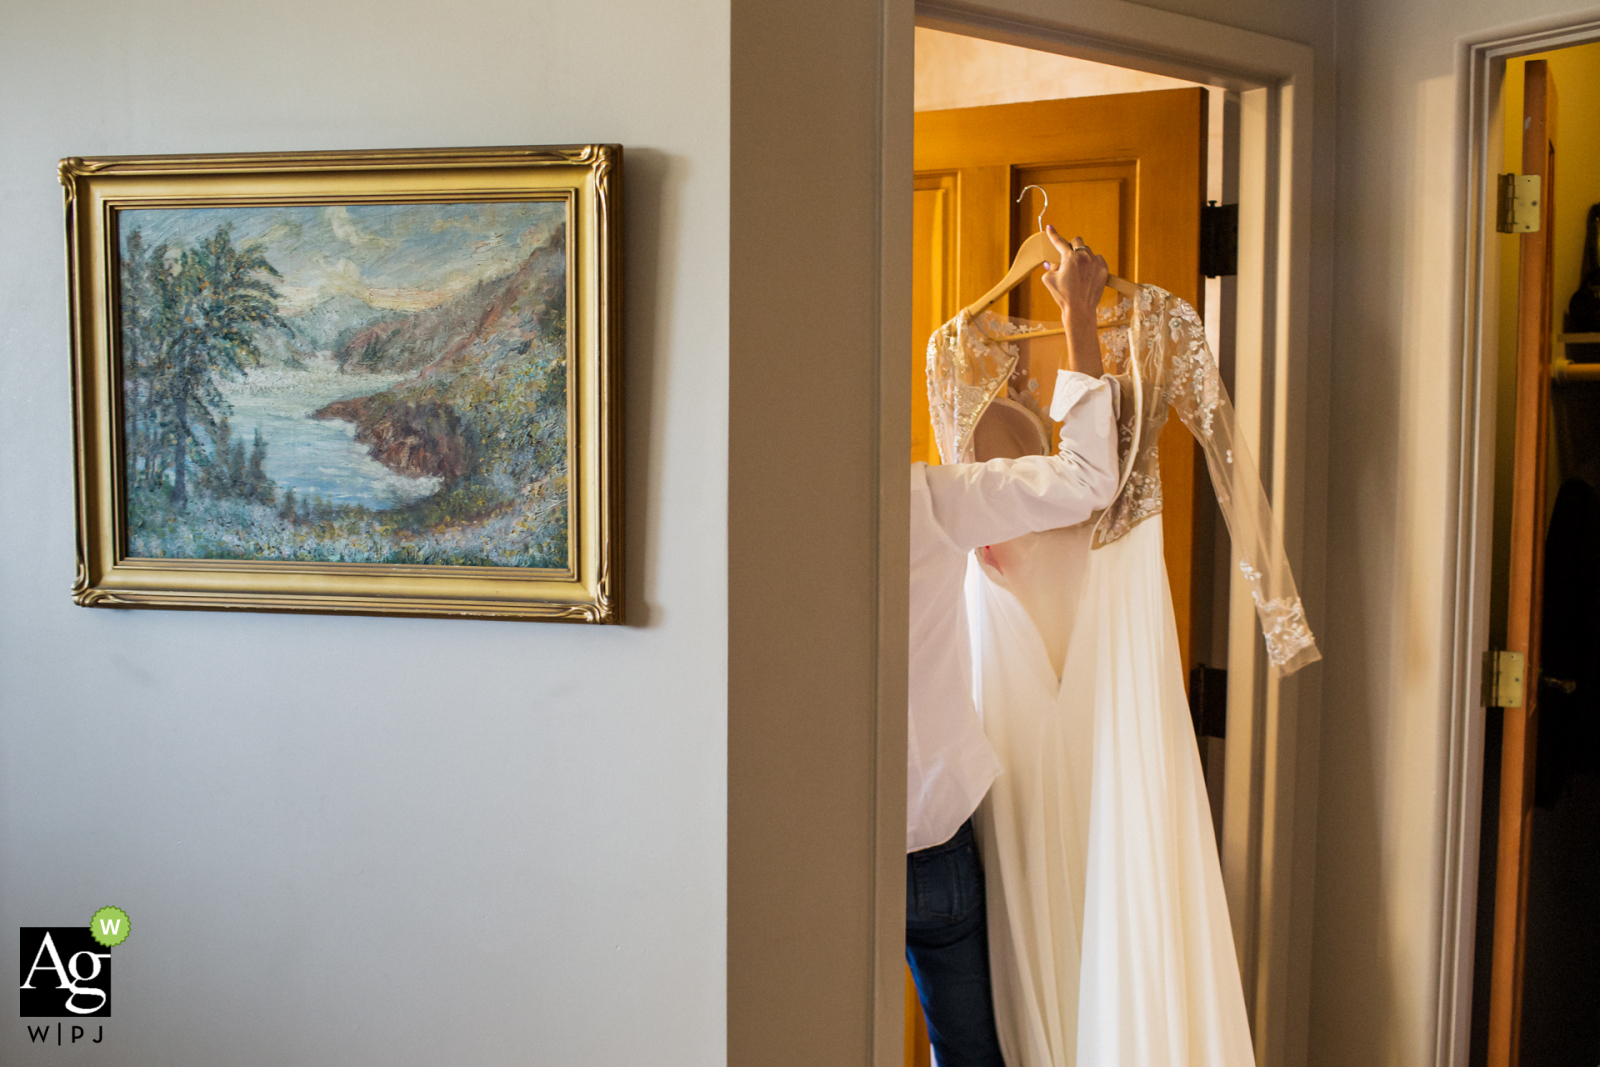 Ramekins Culinary School, Events & Inn, Sonoma fine art wedding detail photography picture showing the Hurrying to get changed